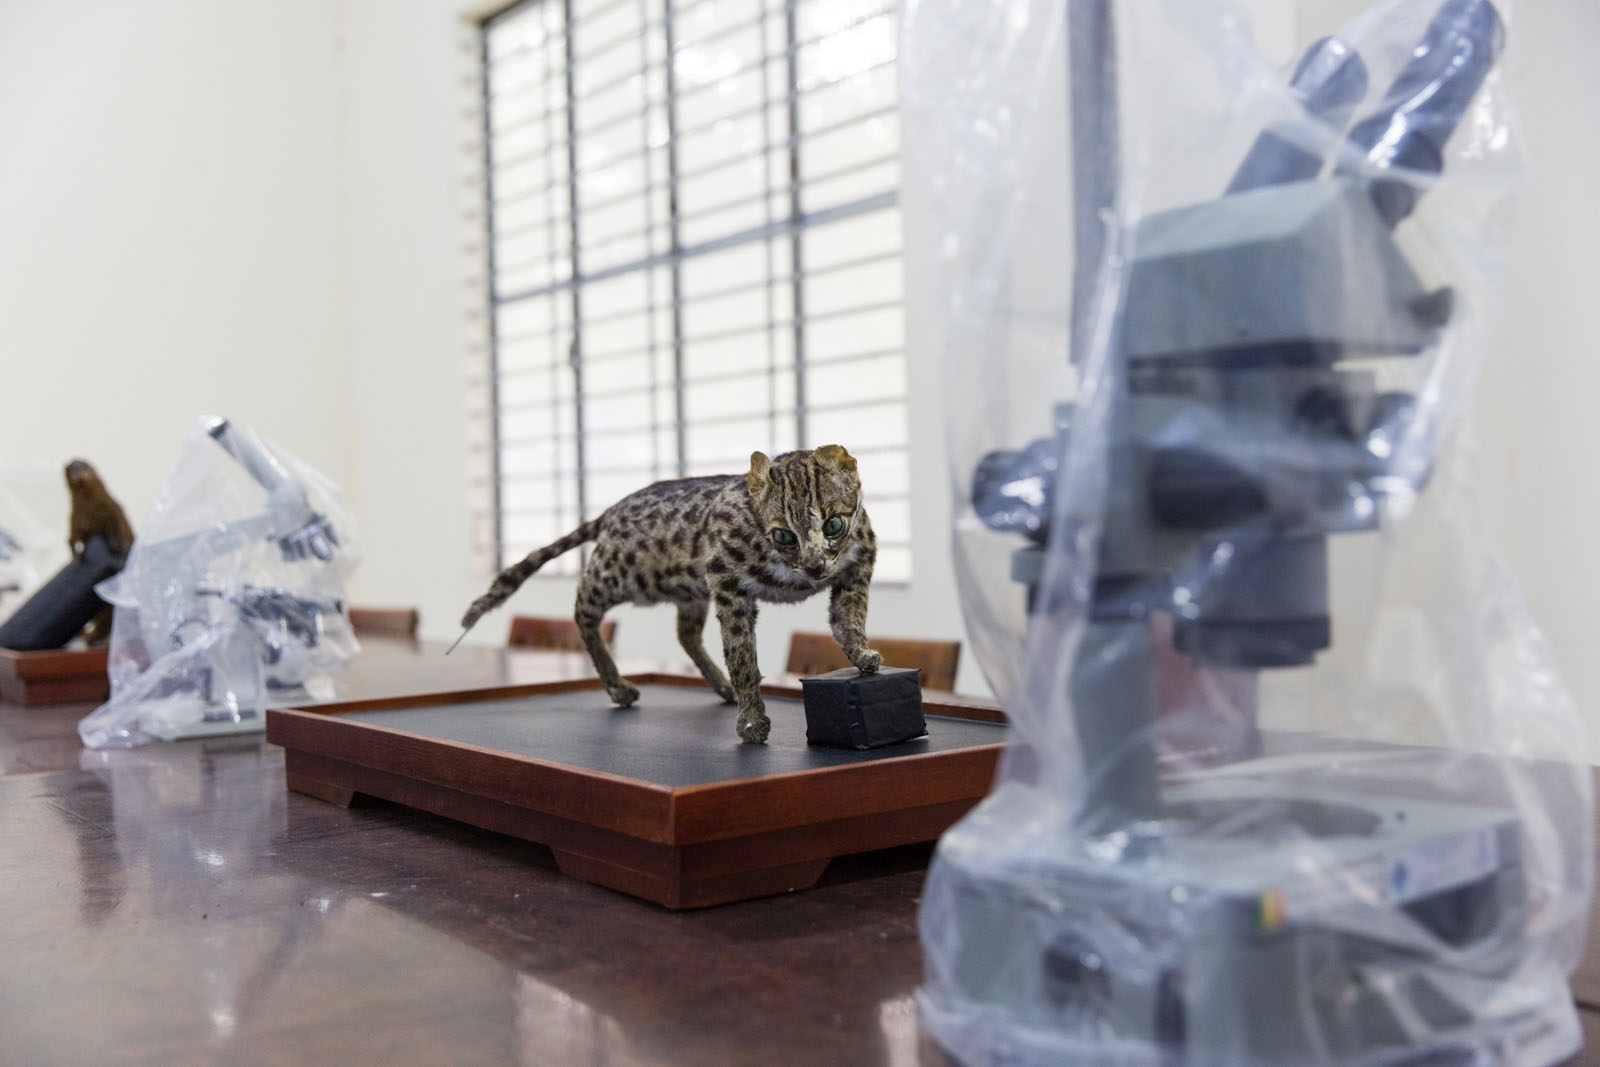 A stuffed wild cat, now critically endangered occupies a classroom at the College of Environment & Natural Resources Department of Can Tho University. This department of Can Tho University is researching and implementing projects to help protect certain species from extinction.